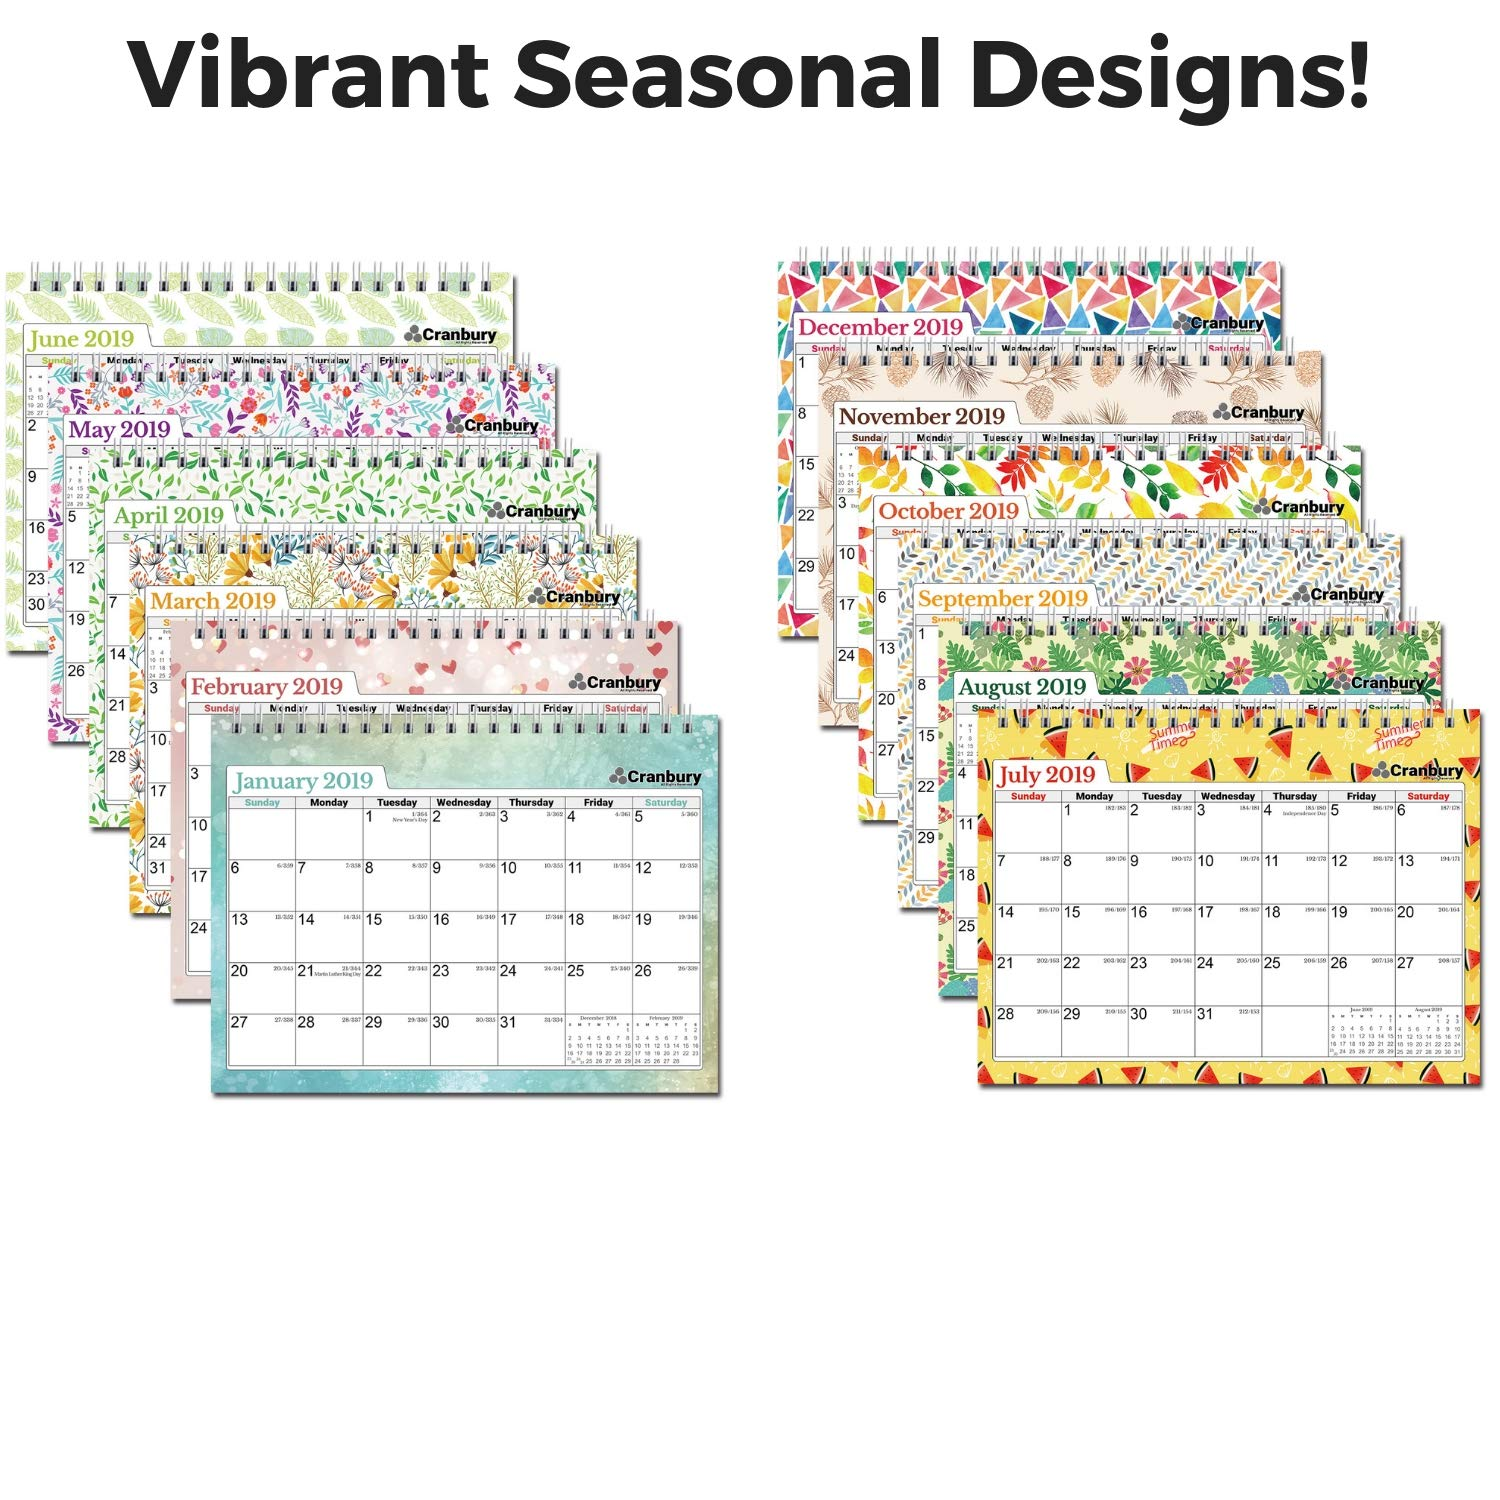 Cranbury Small Desk Calendar 2019 Monthly: Flip Desktop Counter Top Calendars with Bonus Planner Stickers for Family and Office, 8''x6'' (Colorful), Sturdy, USE Now Through December 2019 by Cranbury (Image #5)